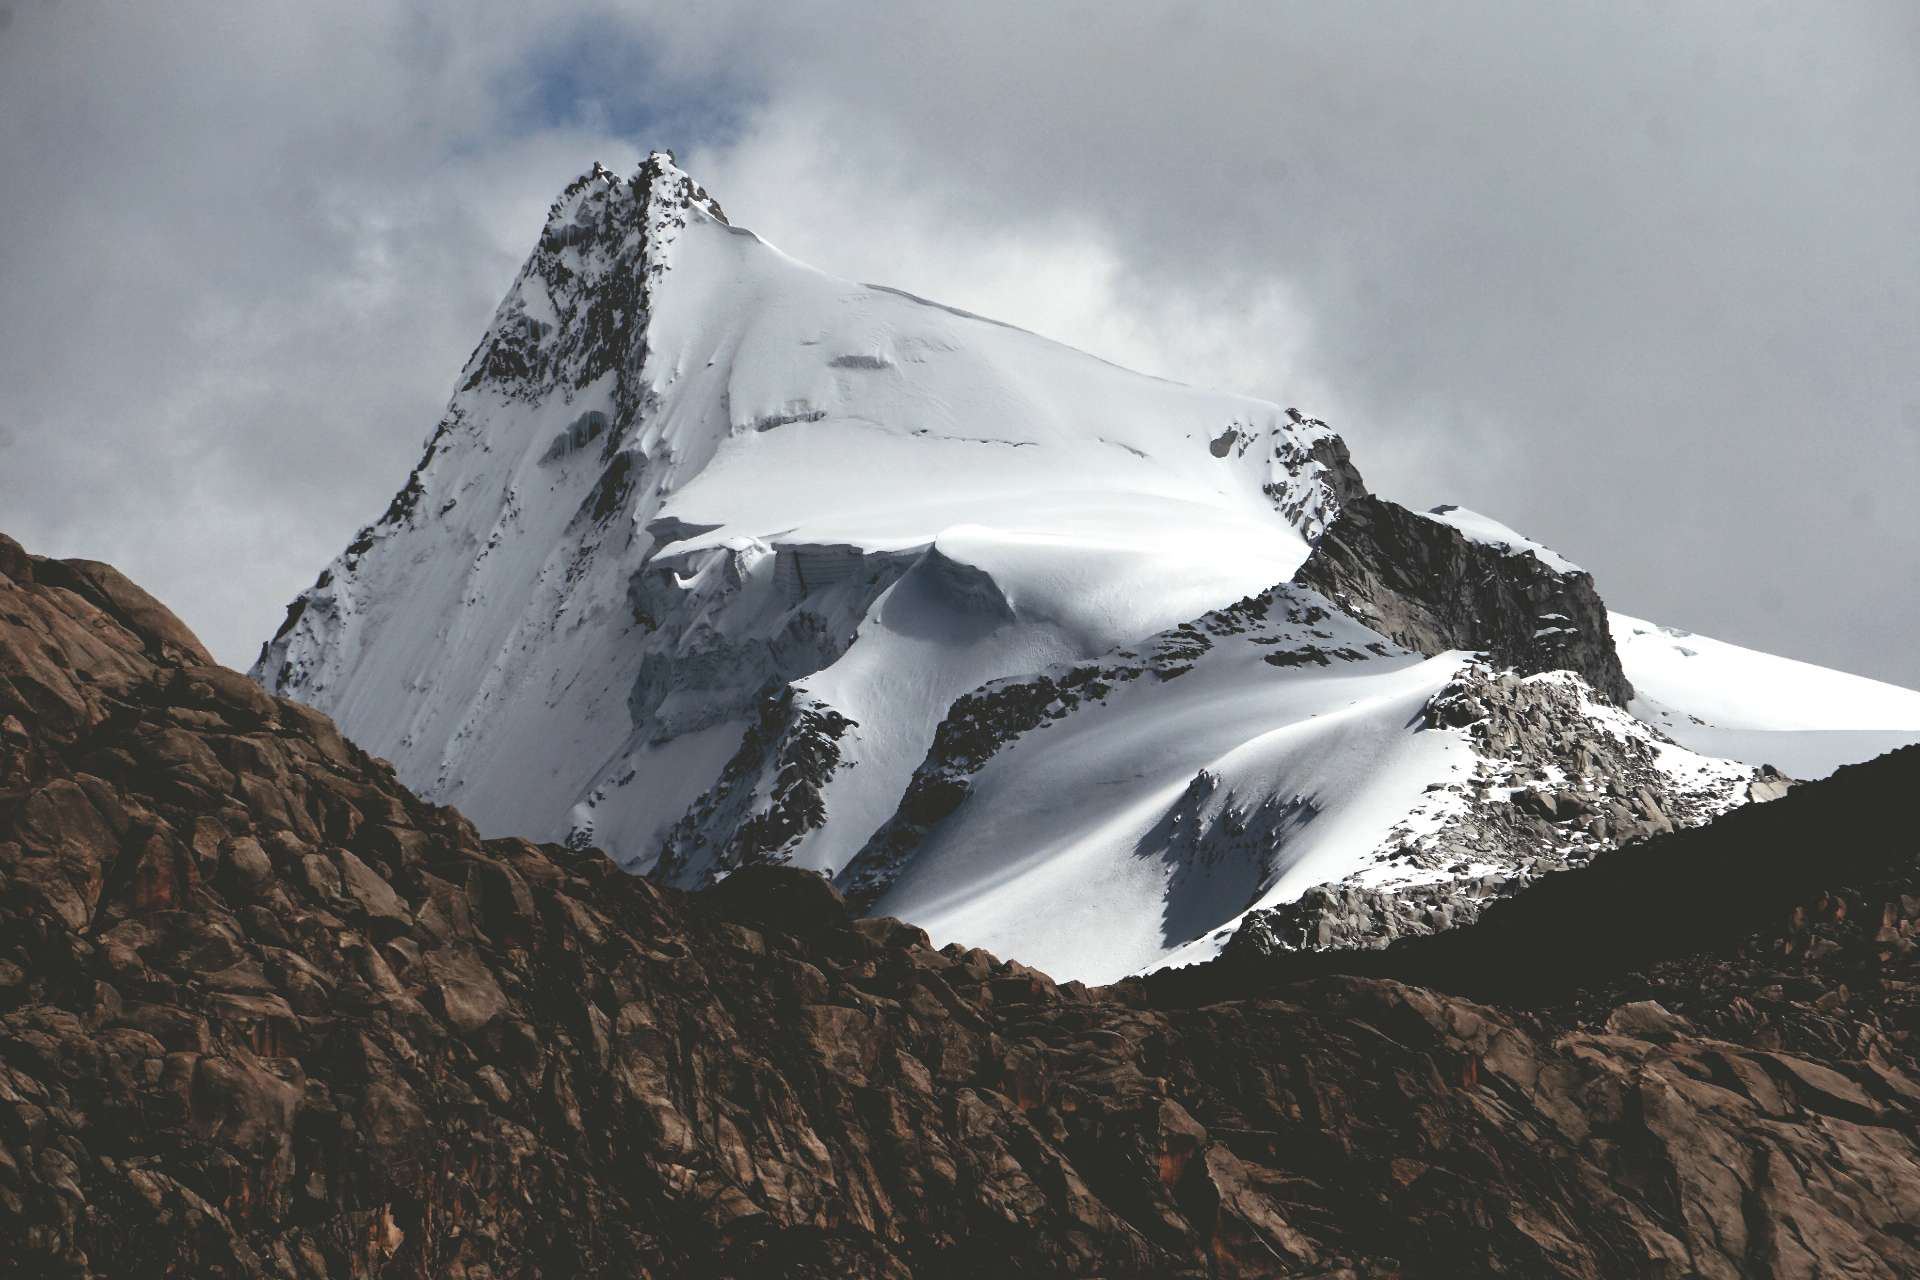 Pariaqaqa Mountain in the Andean highlands of Tanta, Peru